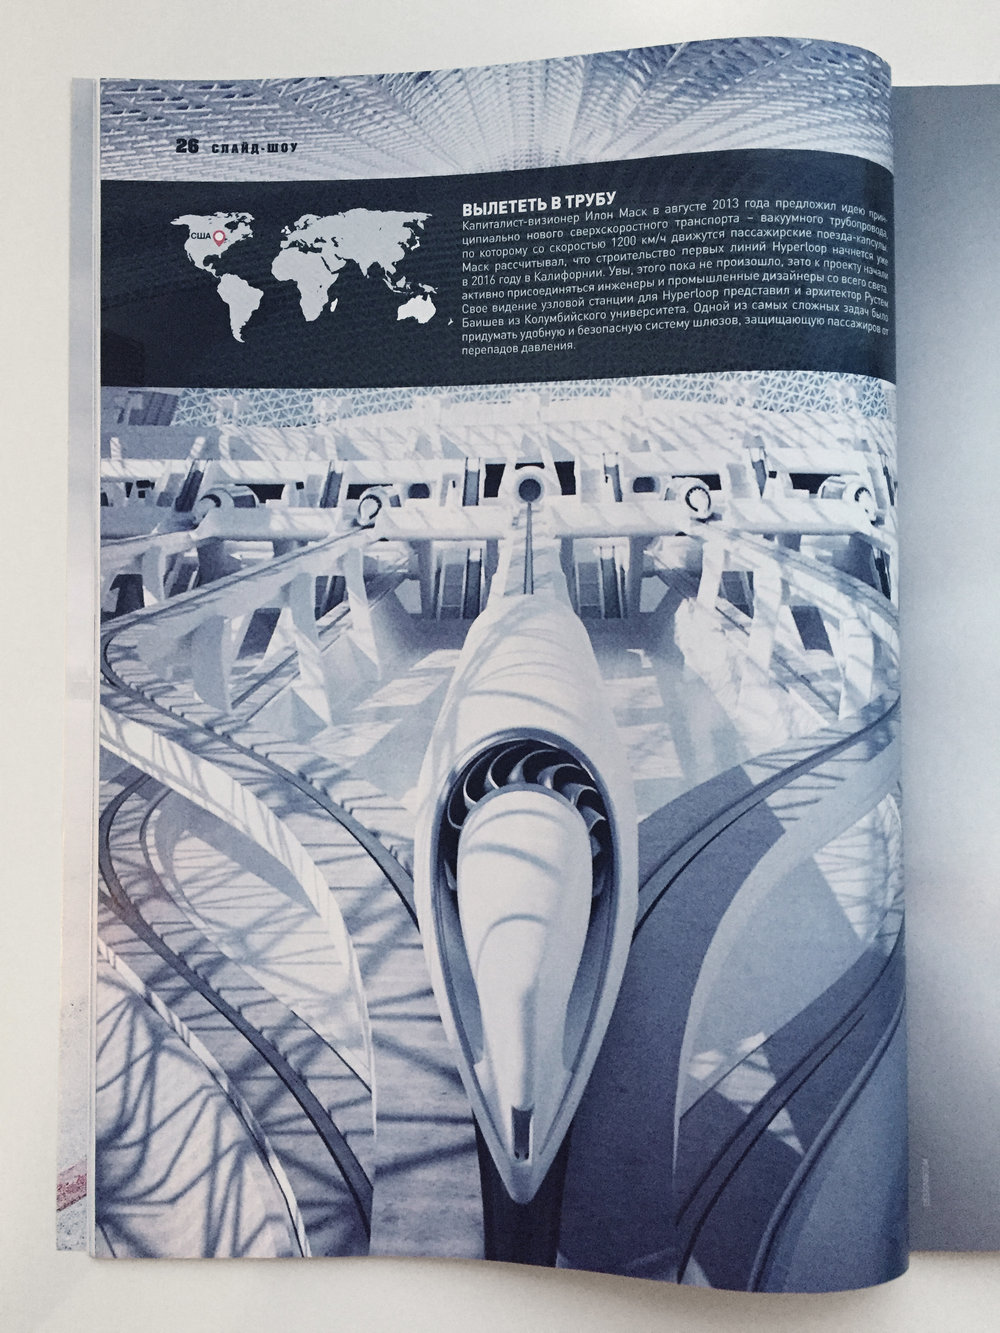 rbsystems_rustem baishev_popular mechanics_hyperloop 2.jpg